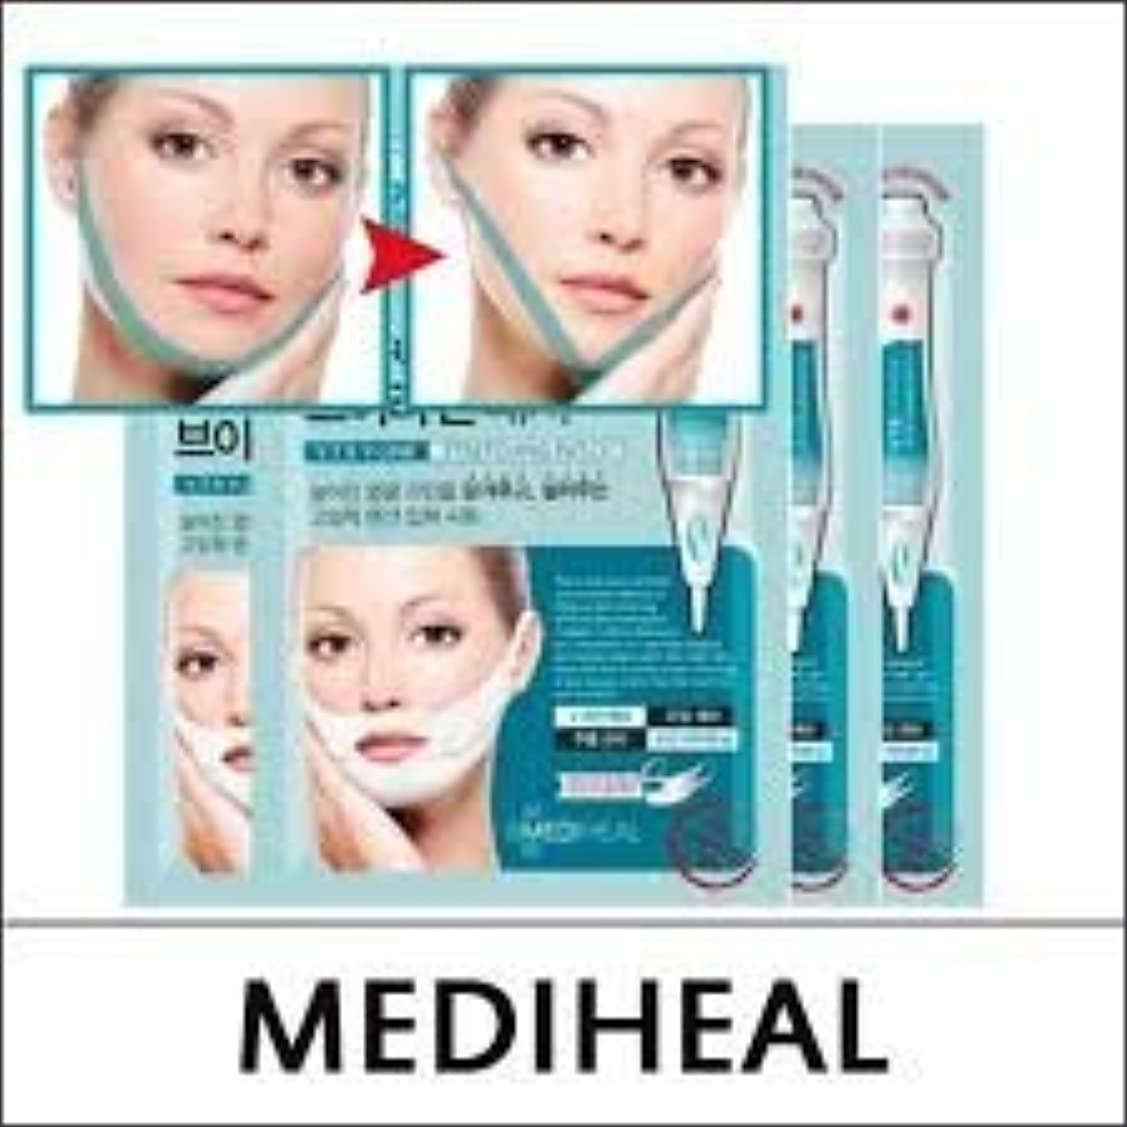 剥離ジョージエリオット給料MEDIHEAL VTR V Stretching Patch 20mlX4pcs/A.R.P Neck Patch/100% Authentic Korea Cosmetic (VTR V-Line Stretching...